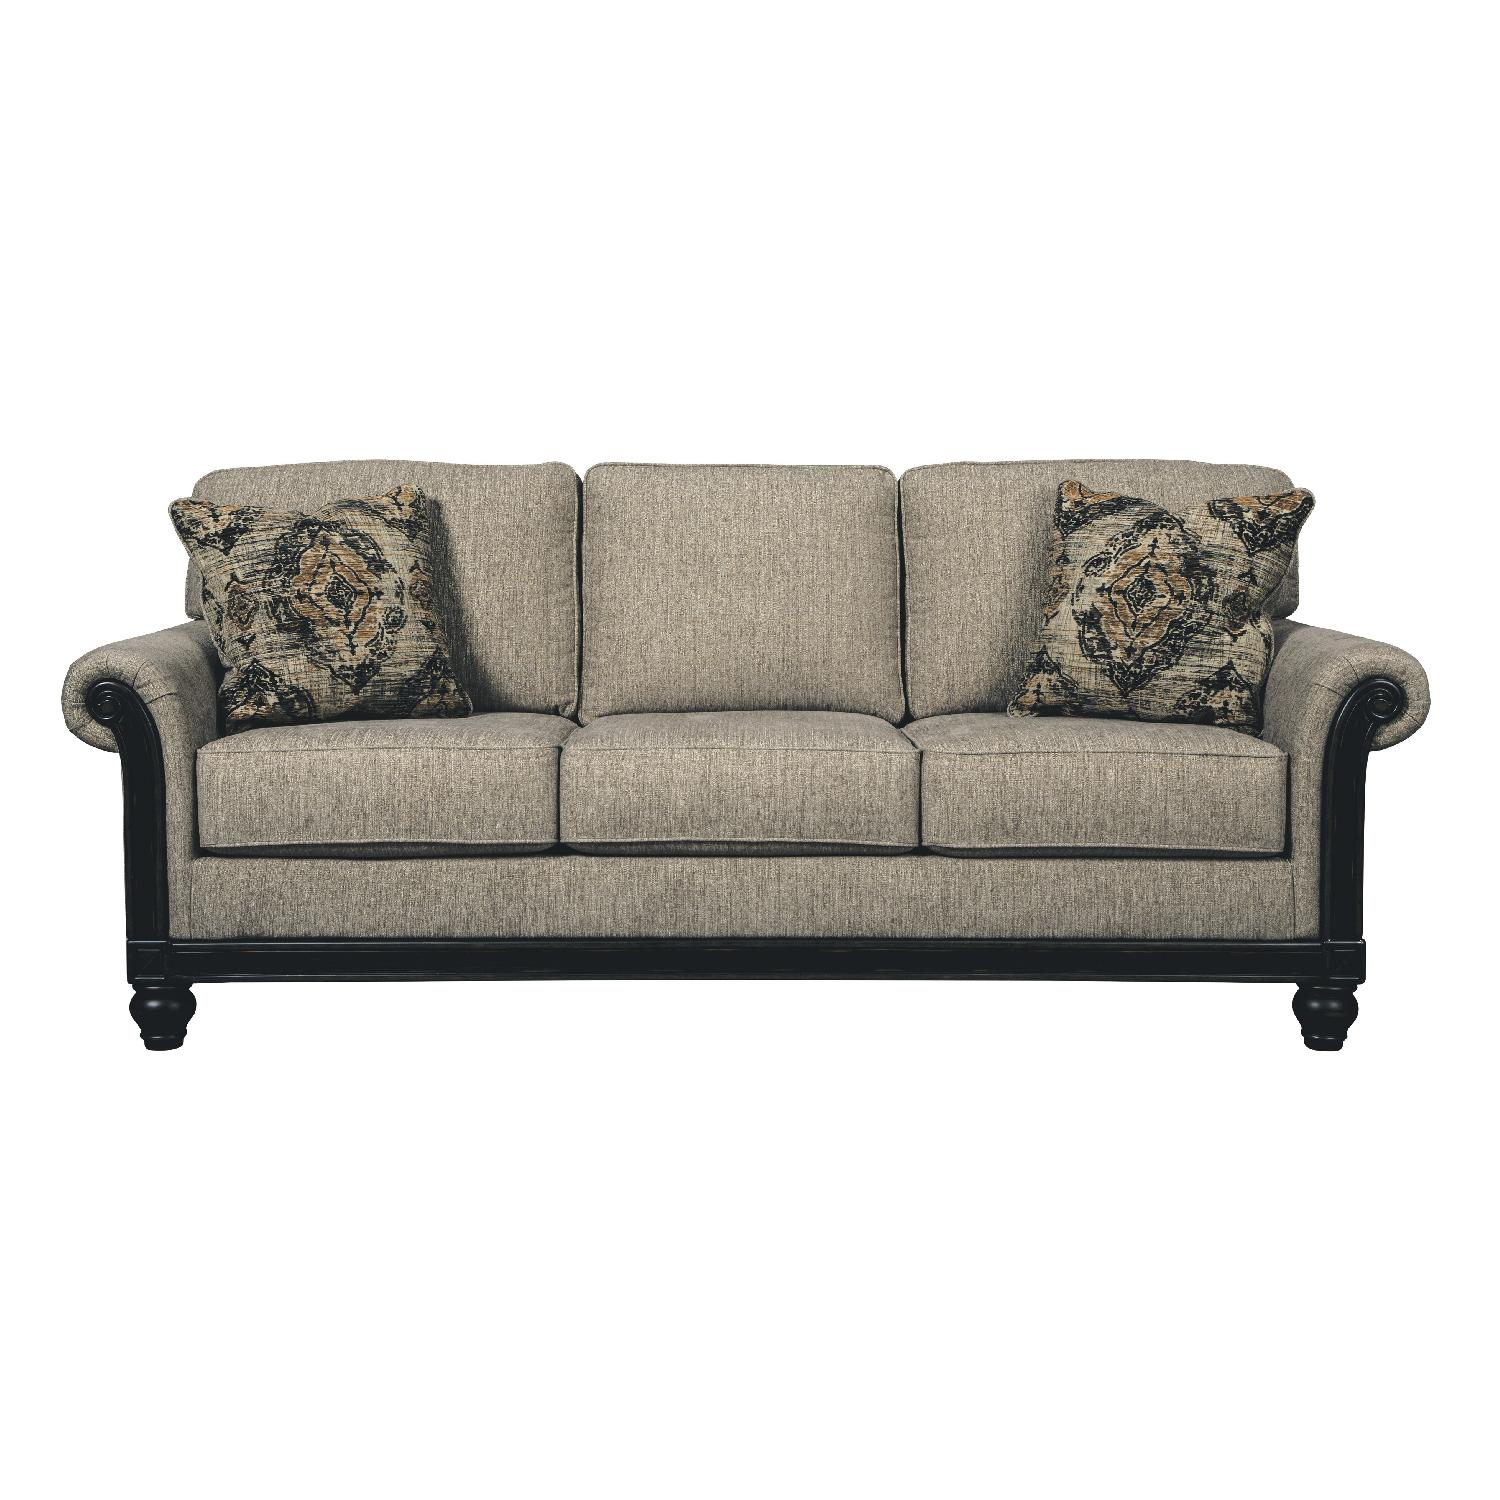 ashley 39 s blackwood 3 seater fabric sofa in taupe aptdeco. Black Bedroom Furniture Sets. Home Design Ideas